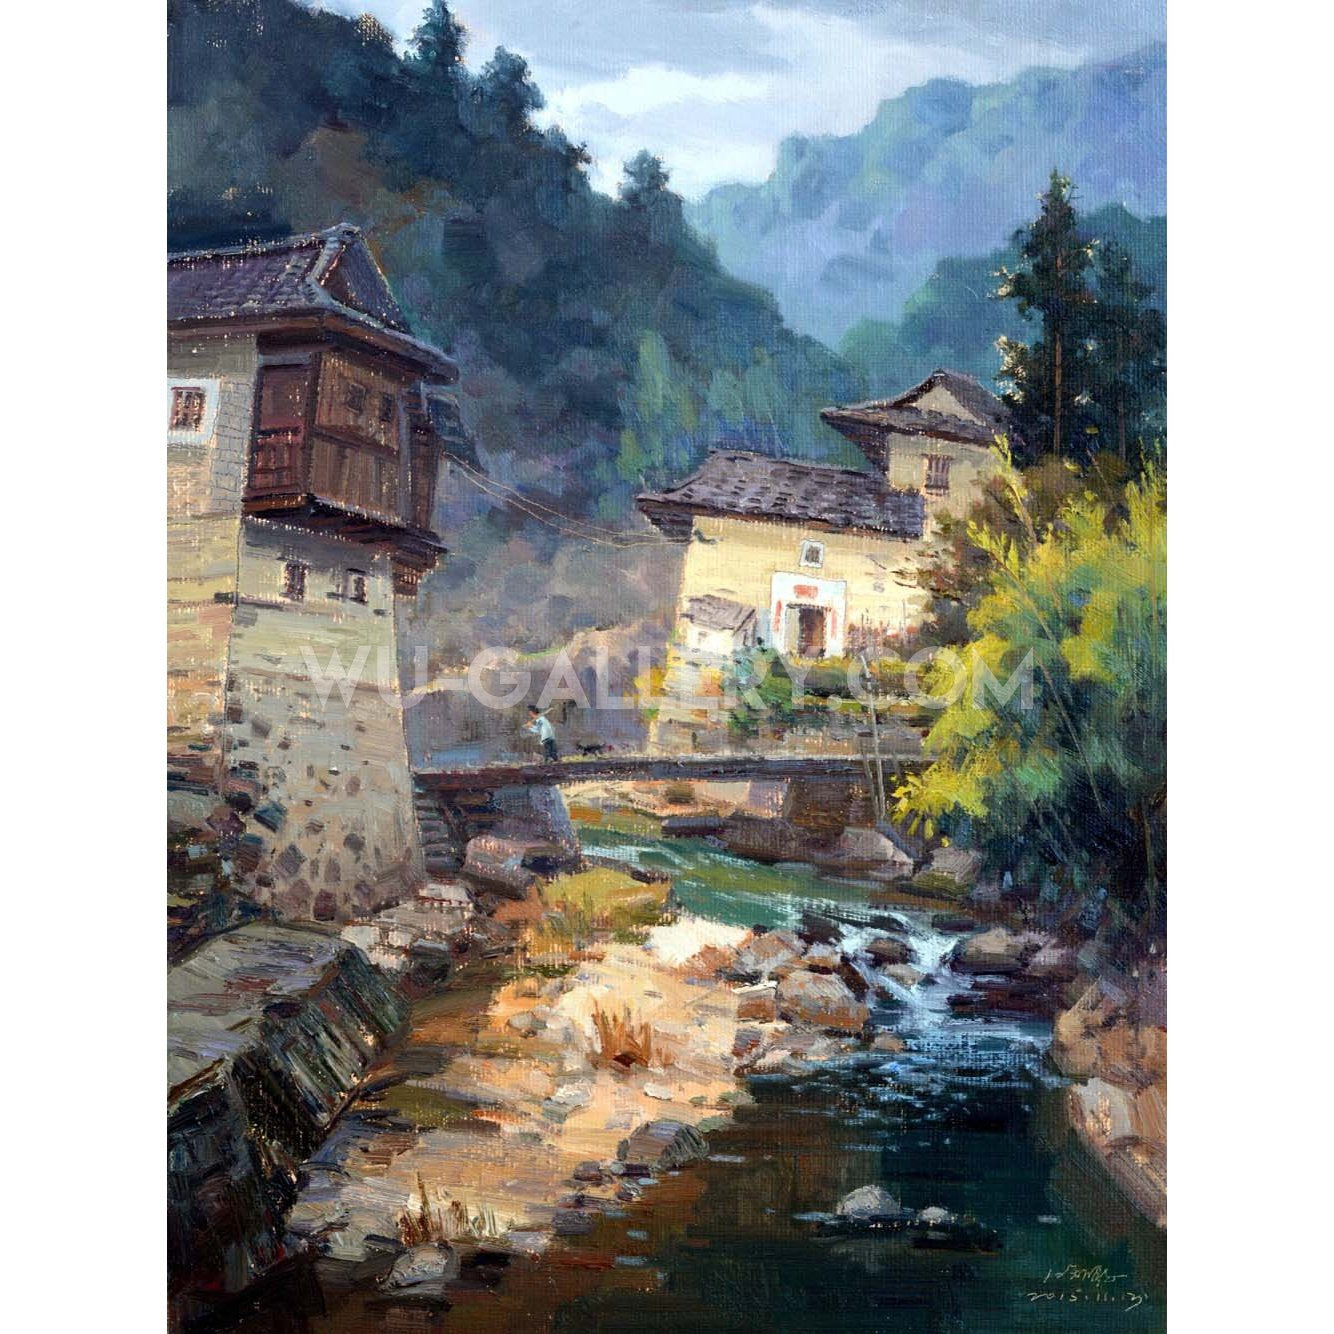 Chinese rural village j007p